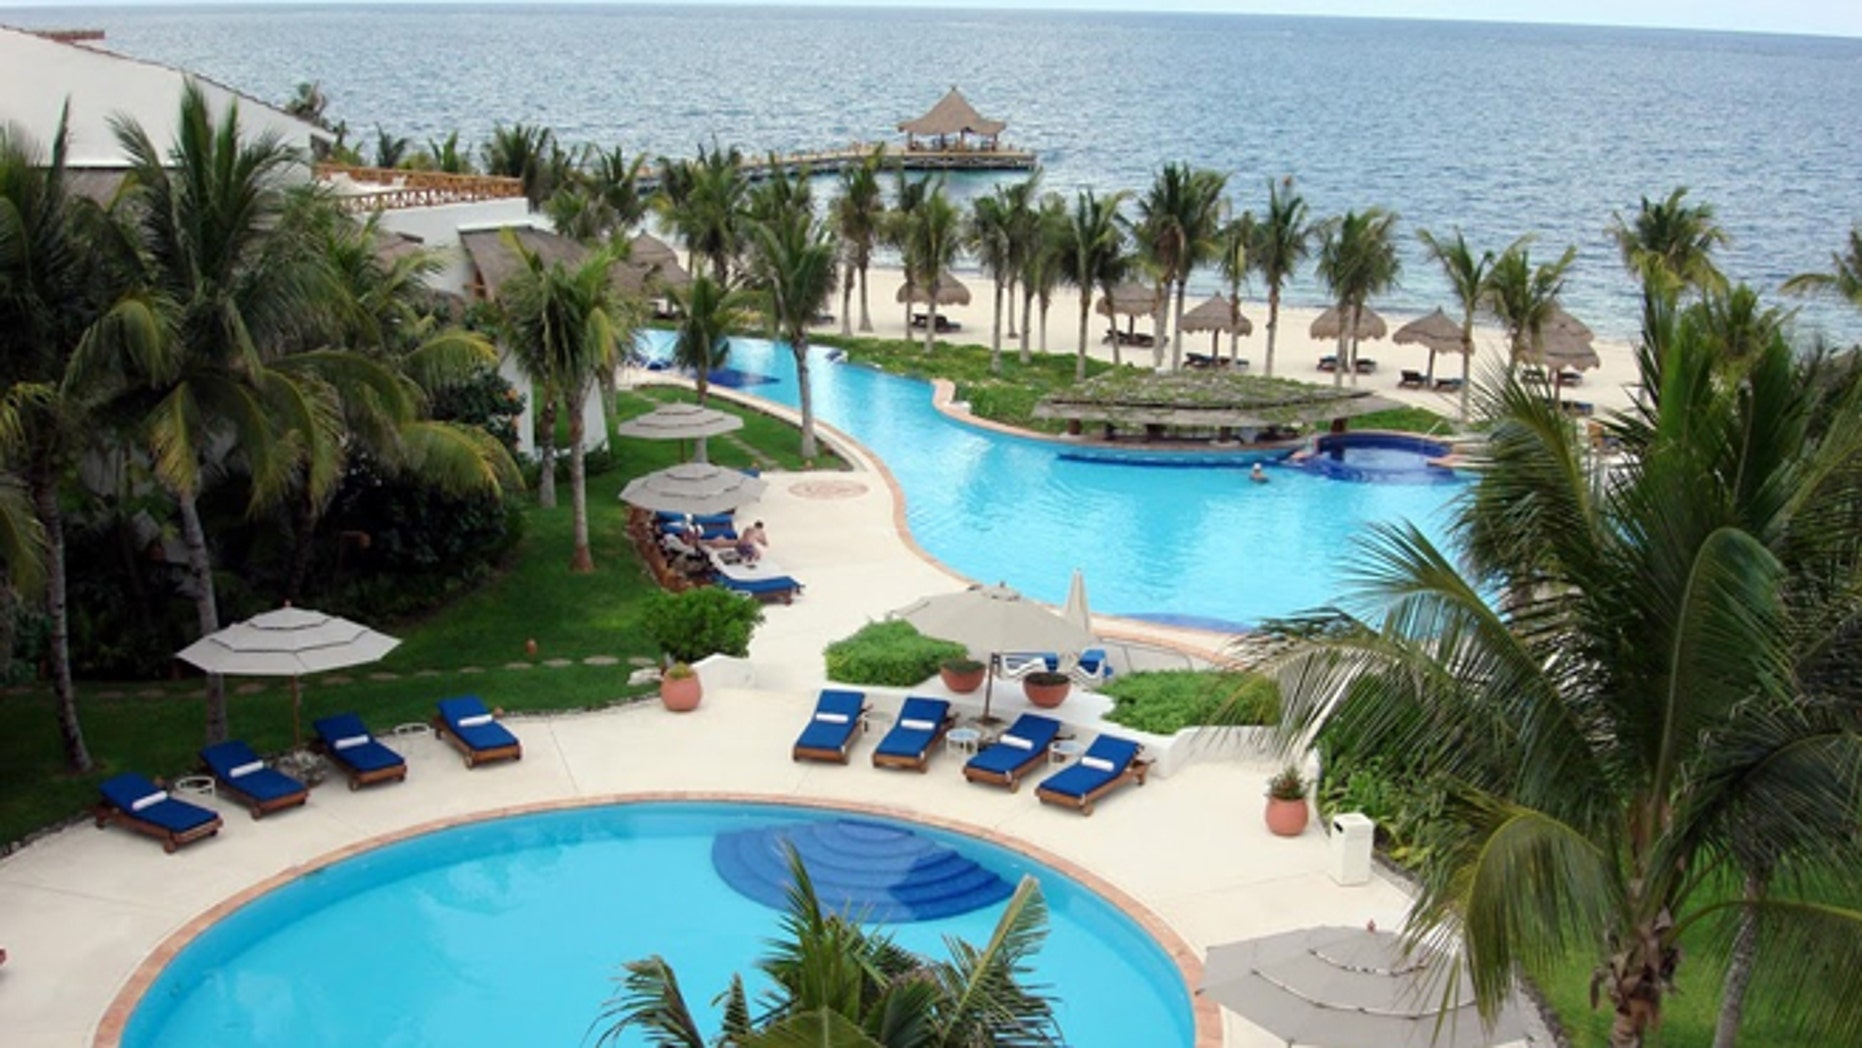 The swinger's Desire resort is located off the Puerto Morelos's public beach, where residents can get an unobstructed view inside.